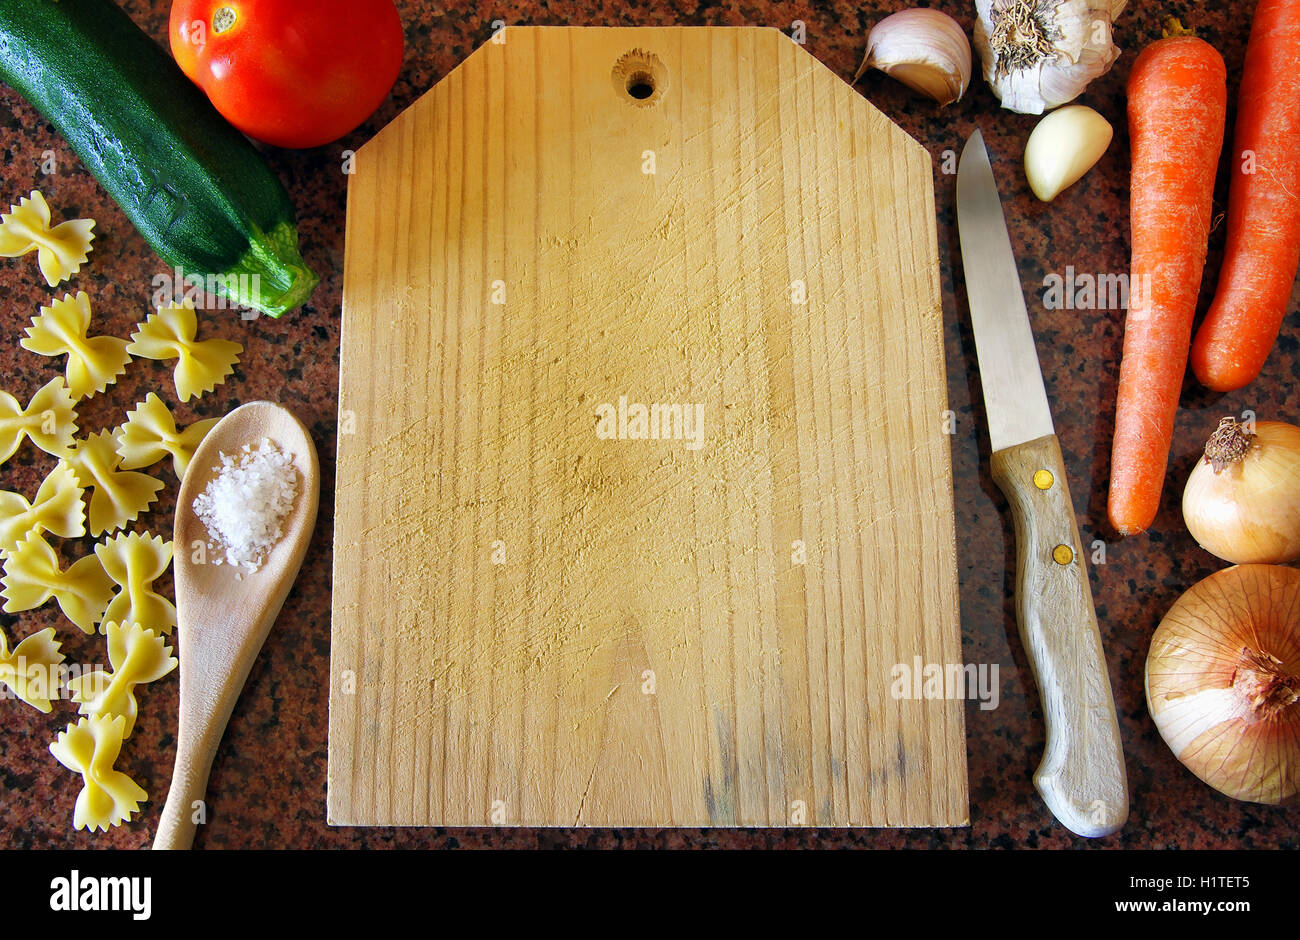 Top view of a clean cutting plank surrounded of food ingredients and kitchen utensils - Stock Image